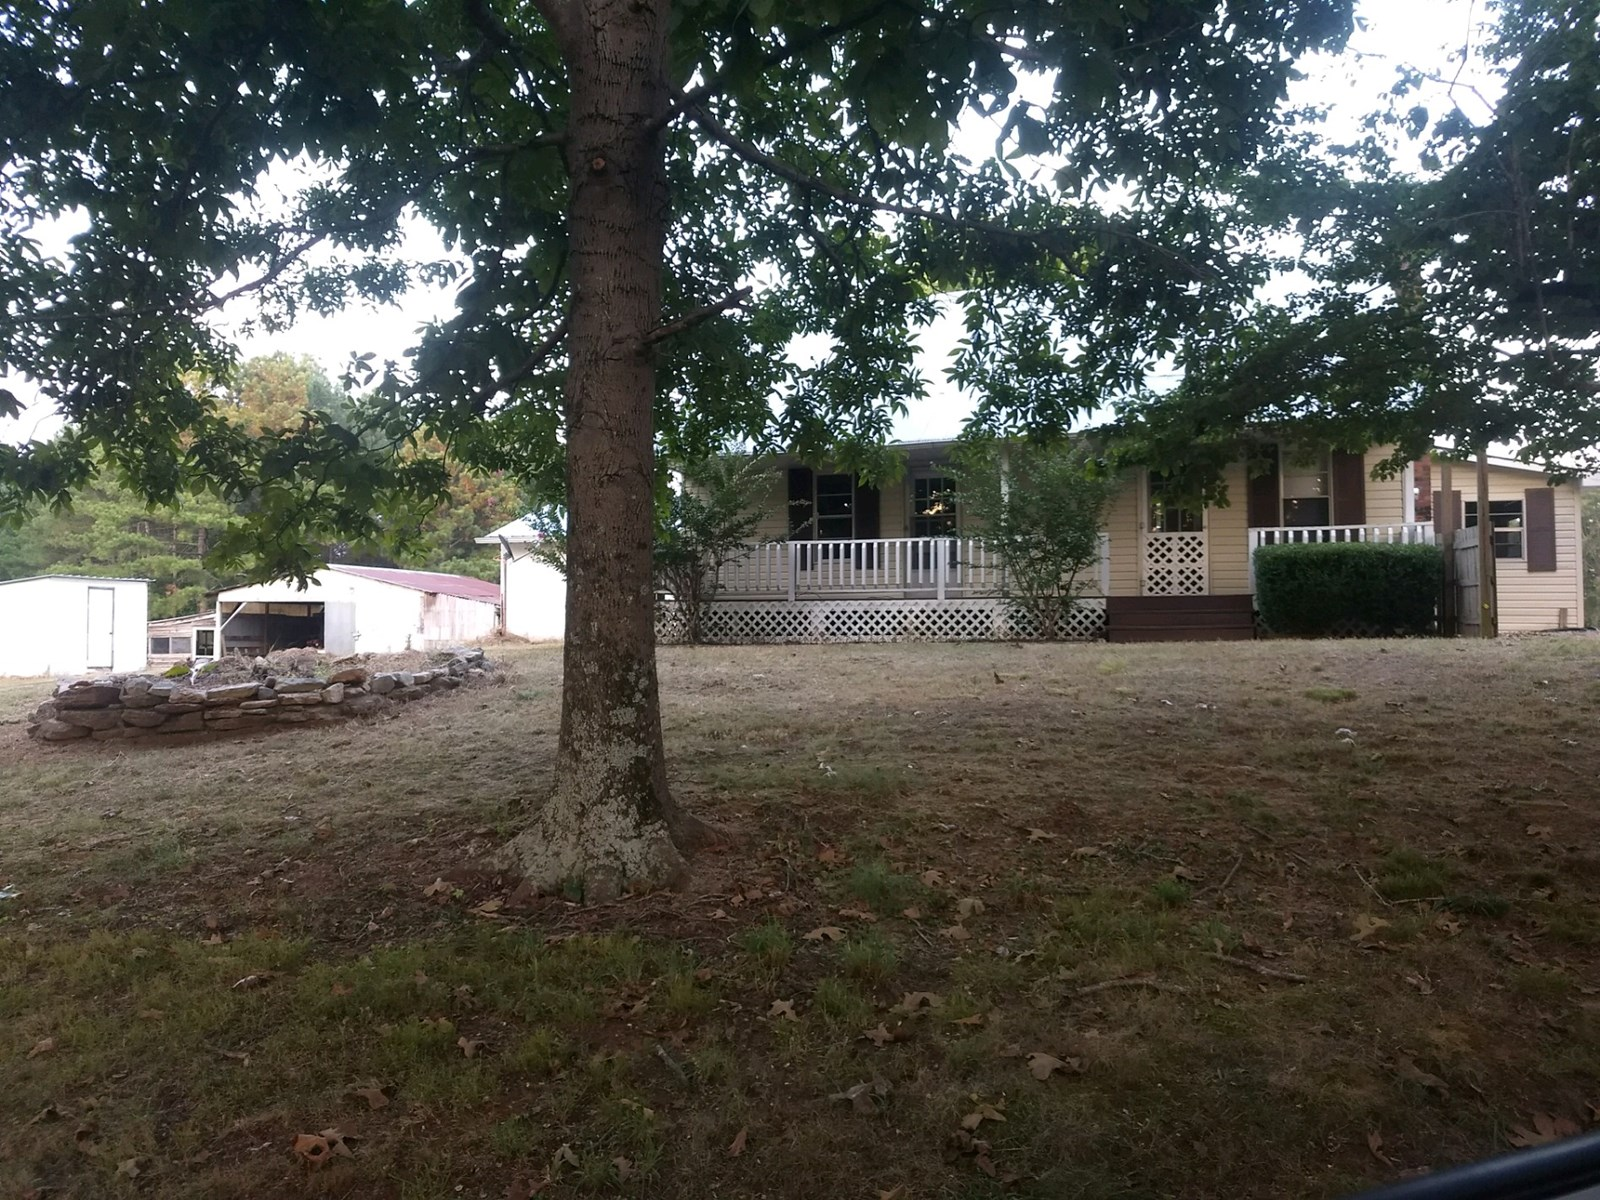 WEST TN FARM FOR SALE, BARN, POND, FENCED PASTURE, ACREAGE